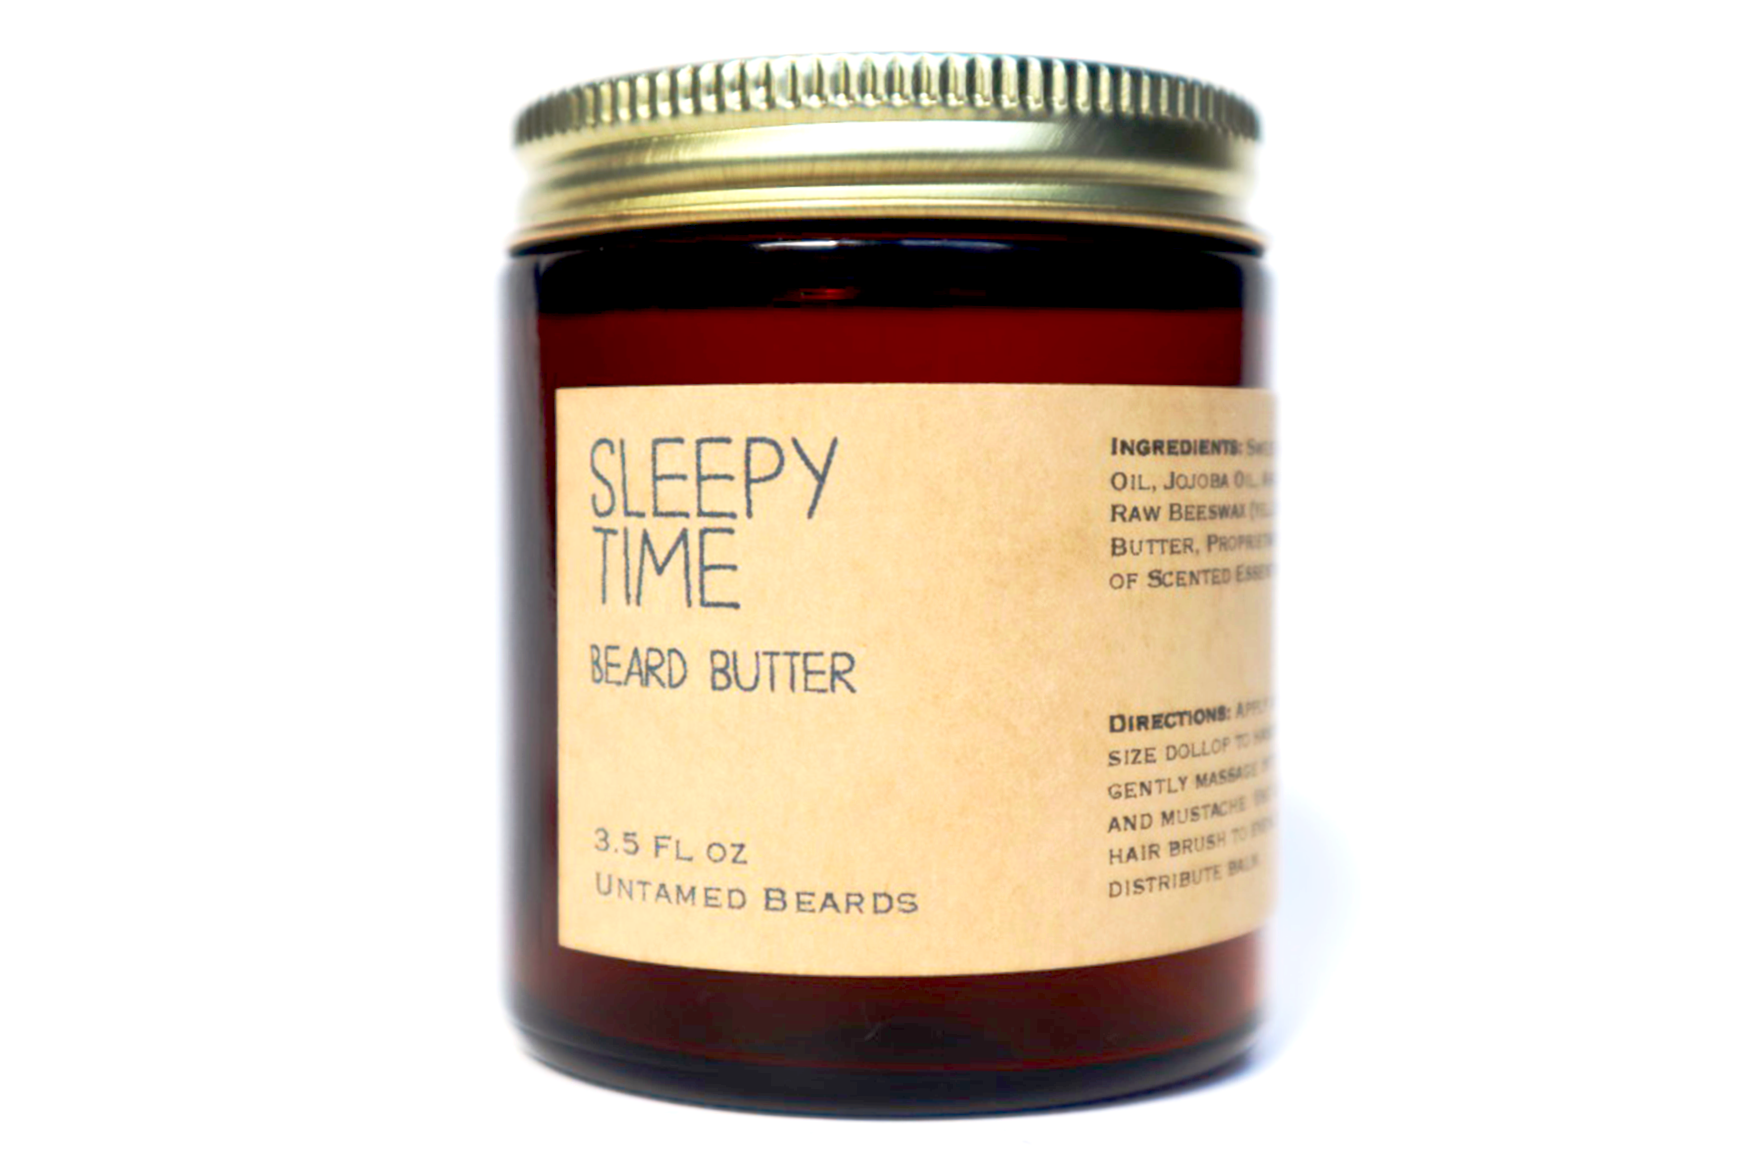 Sleepy Time Beard Butter